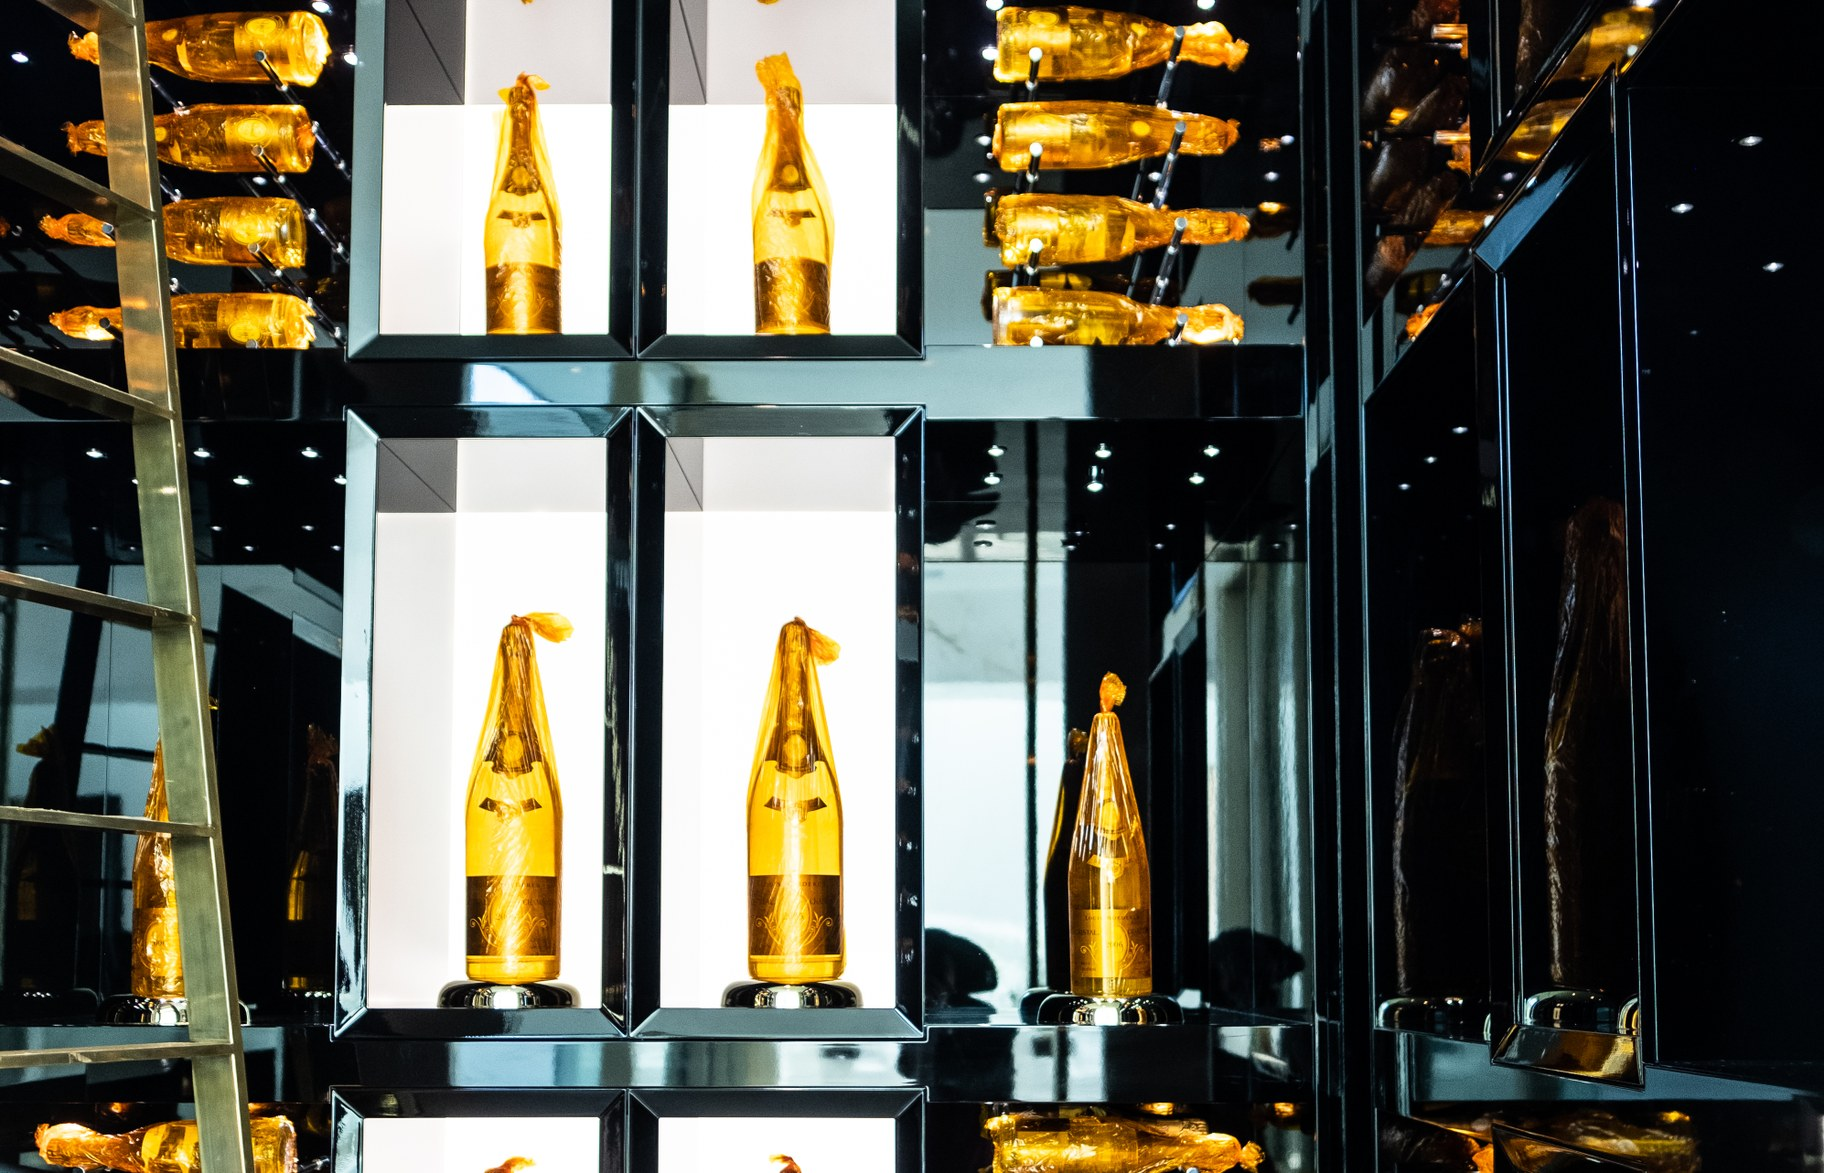 The champagne cellar with a gold ladder.